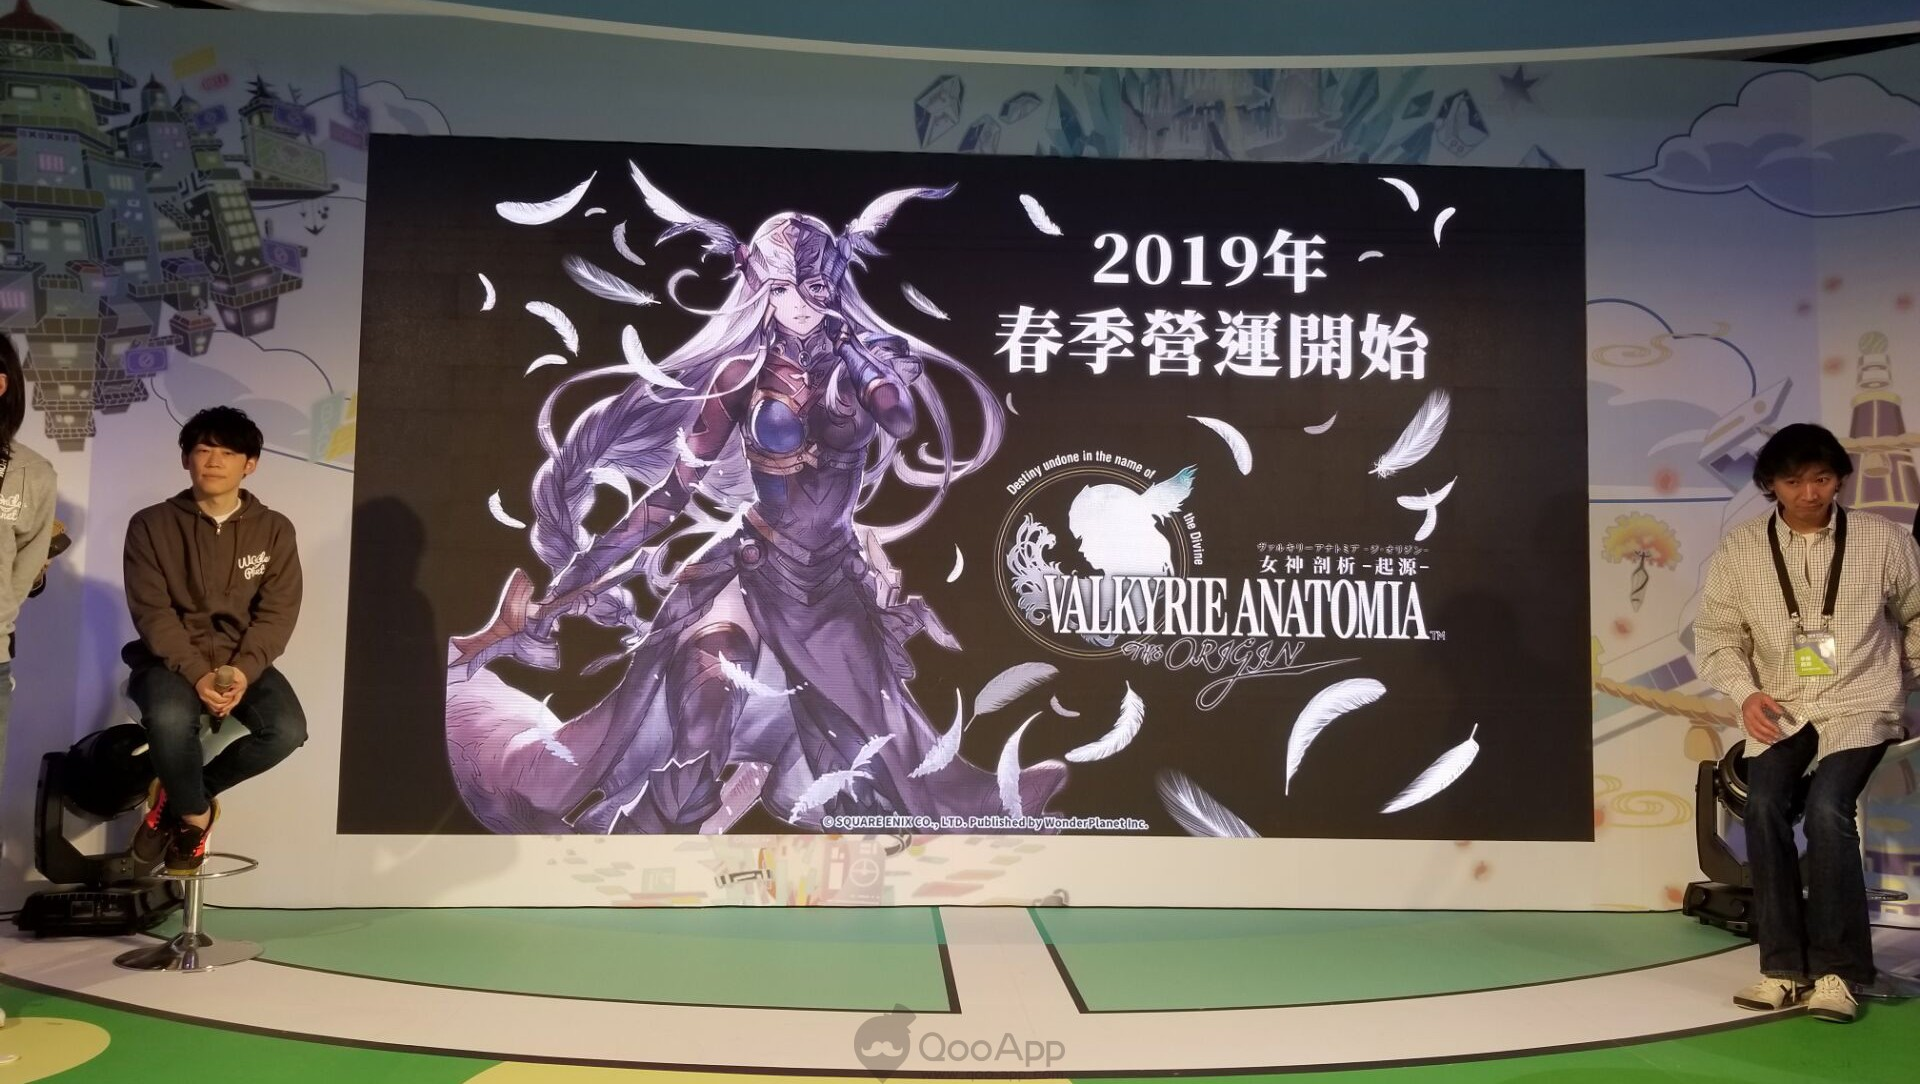 Valkyrie Anatomia -The Origin- English Version Confirmed